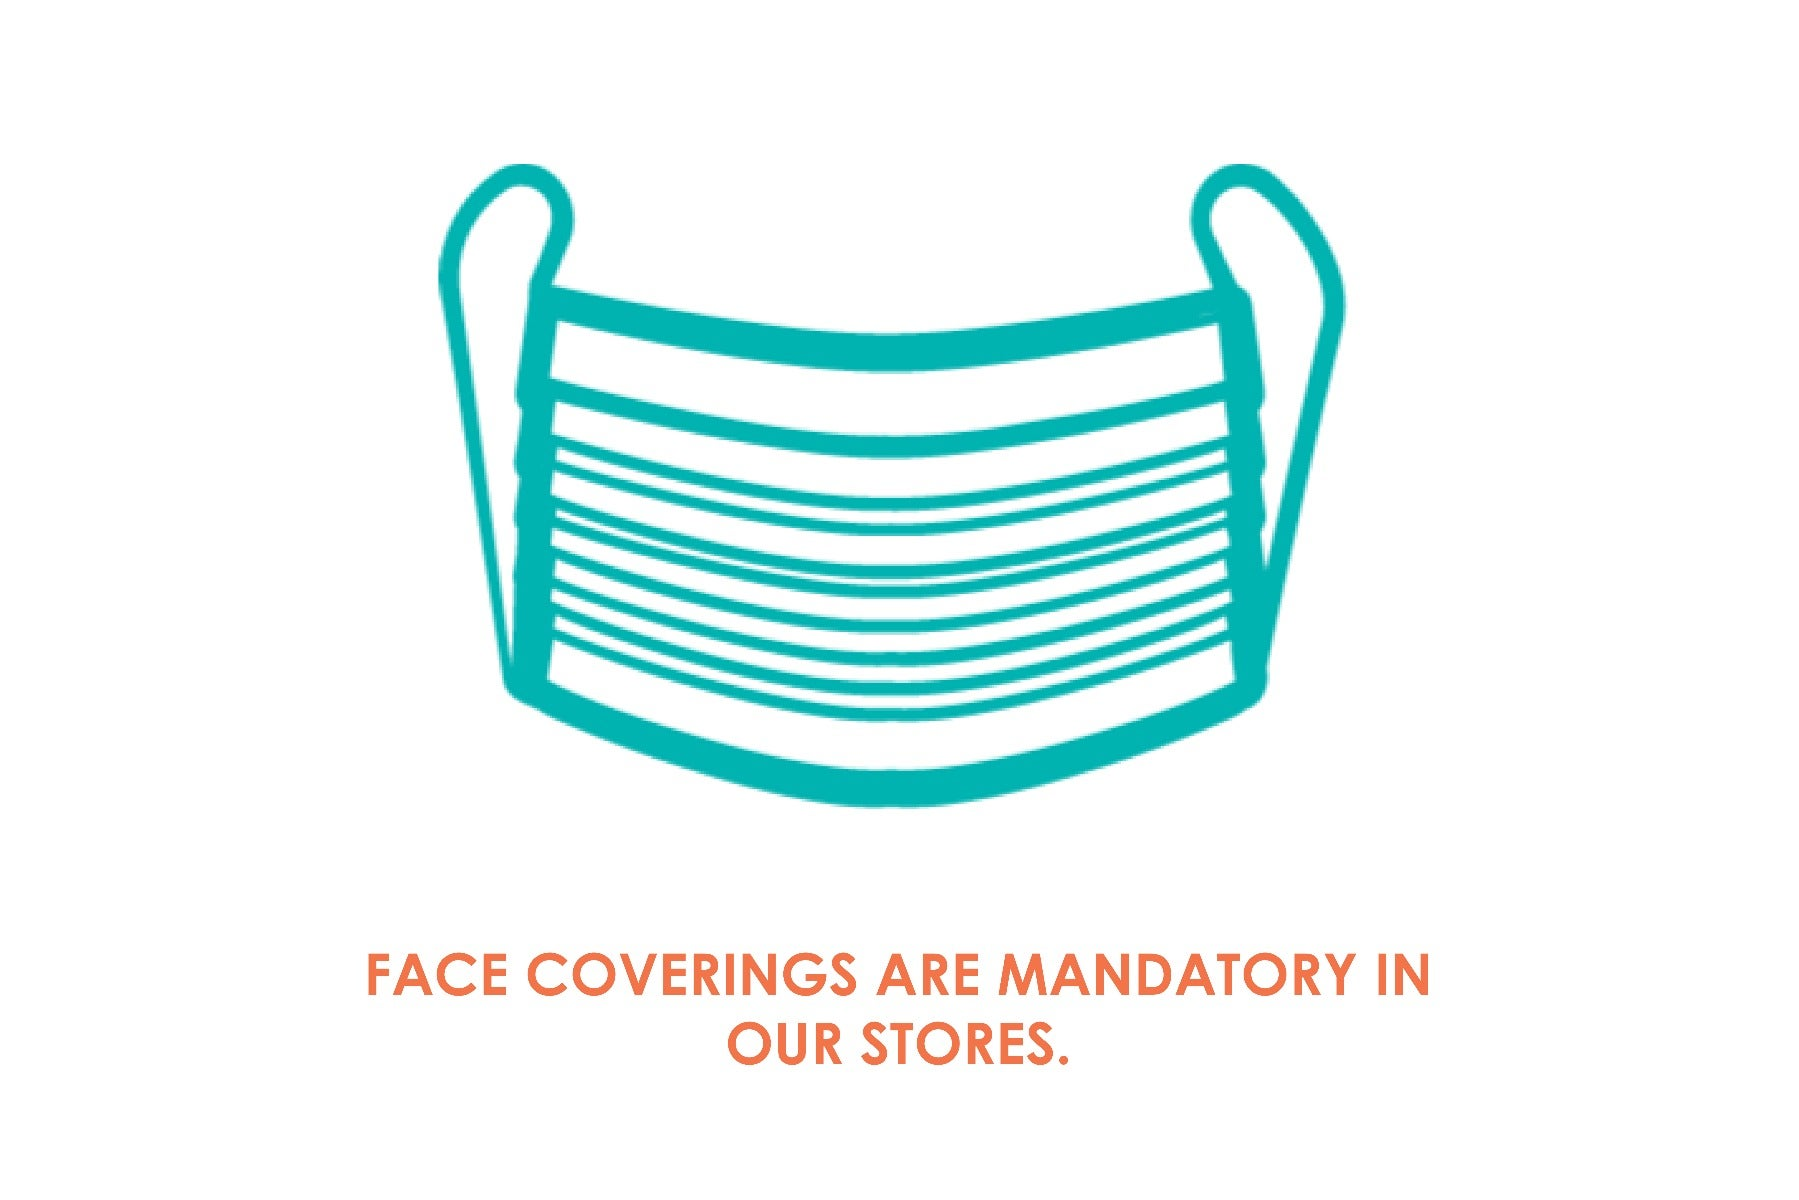 Face coverings are mandatory in our stores.